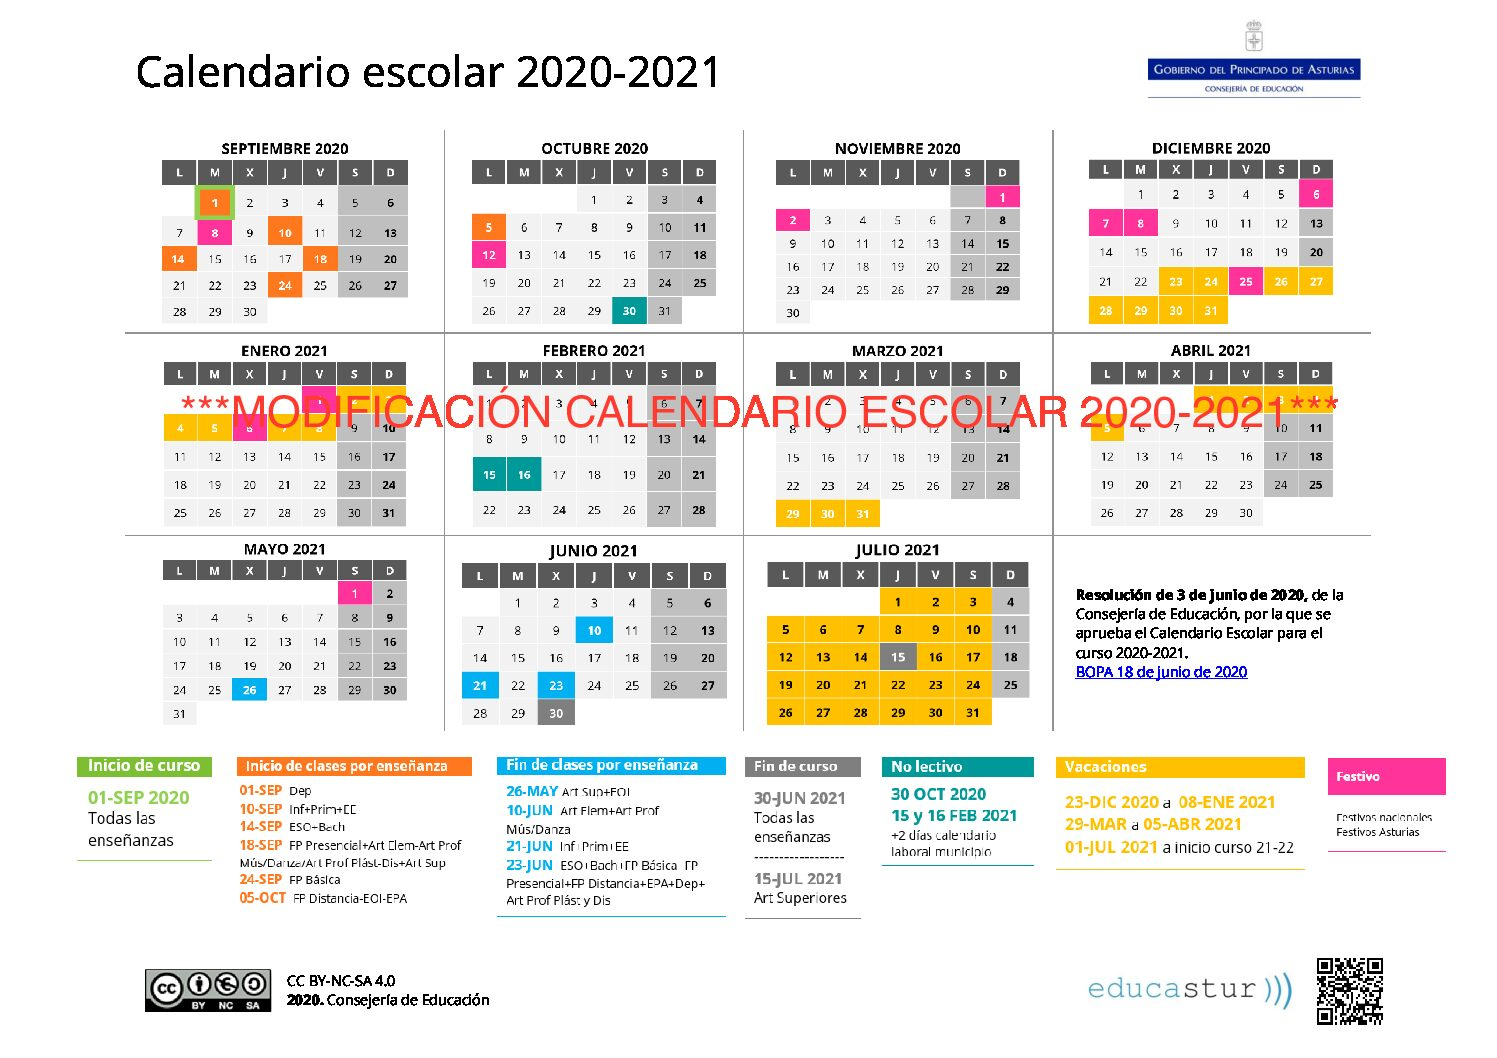 ***IMPORTANTE*** Se modifica el calendario escolar 2020-2021